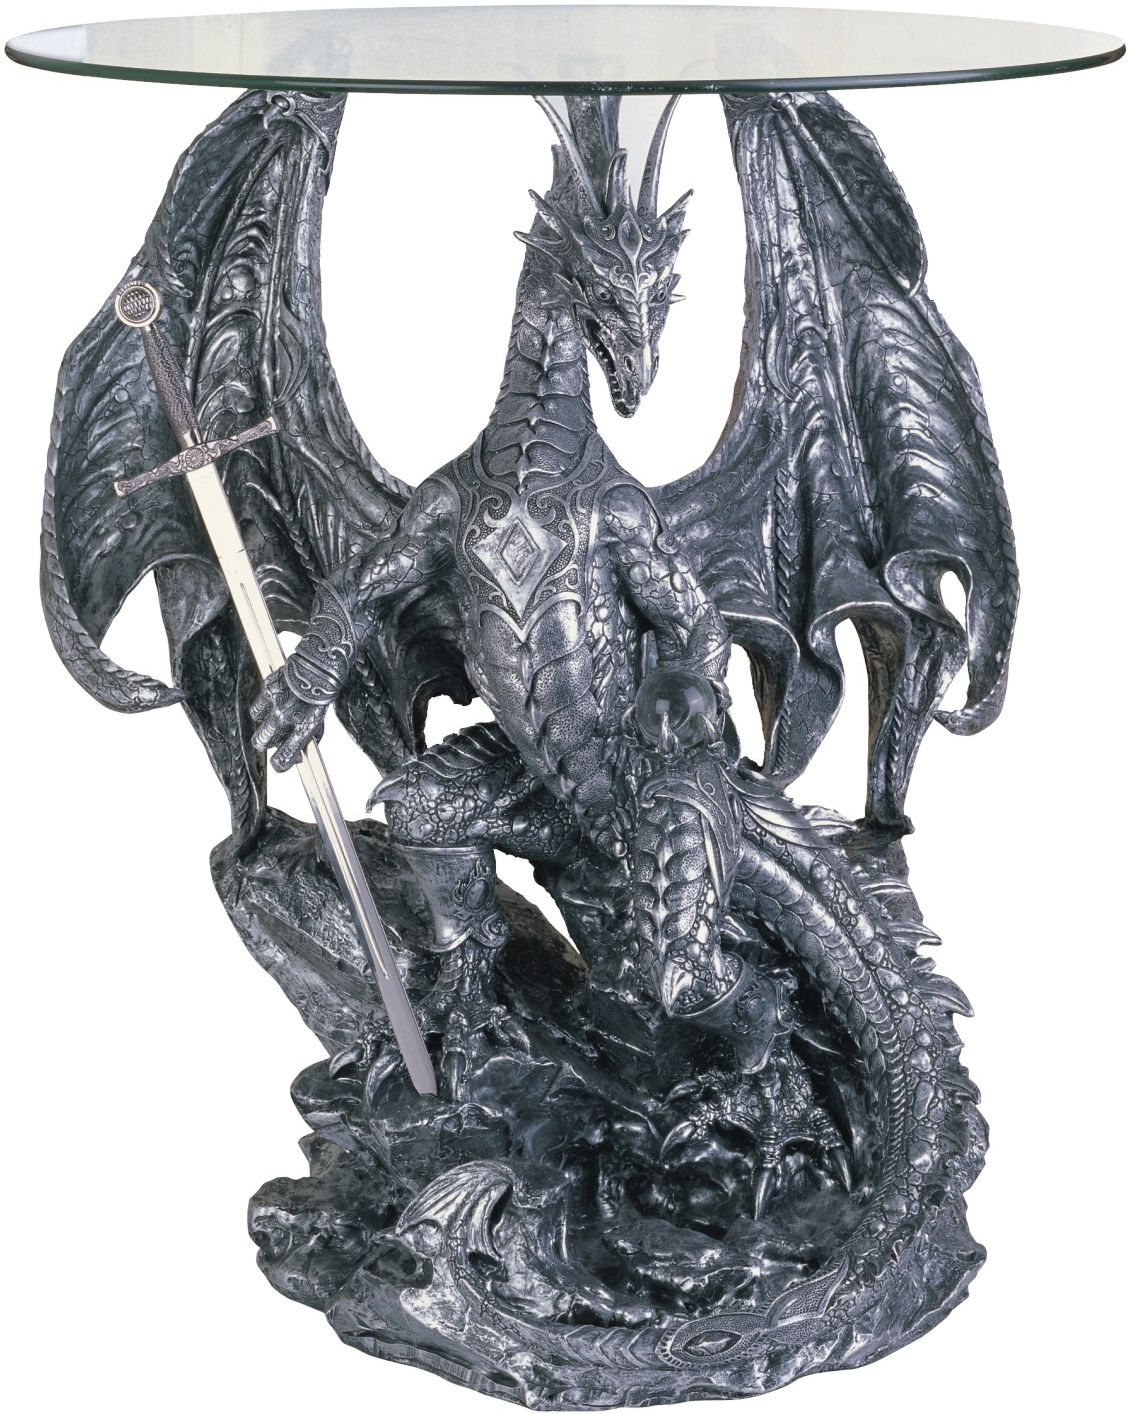 Dragon Collection End Table Furniture Decor Dragon Decor Dragon Table Medieval Decor